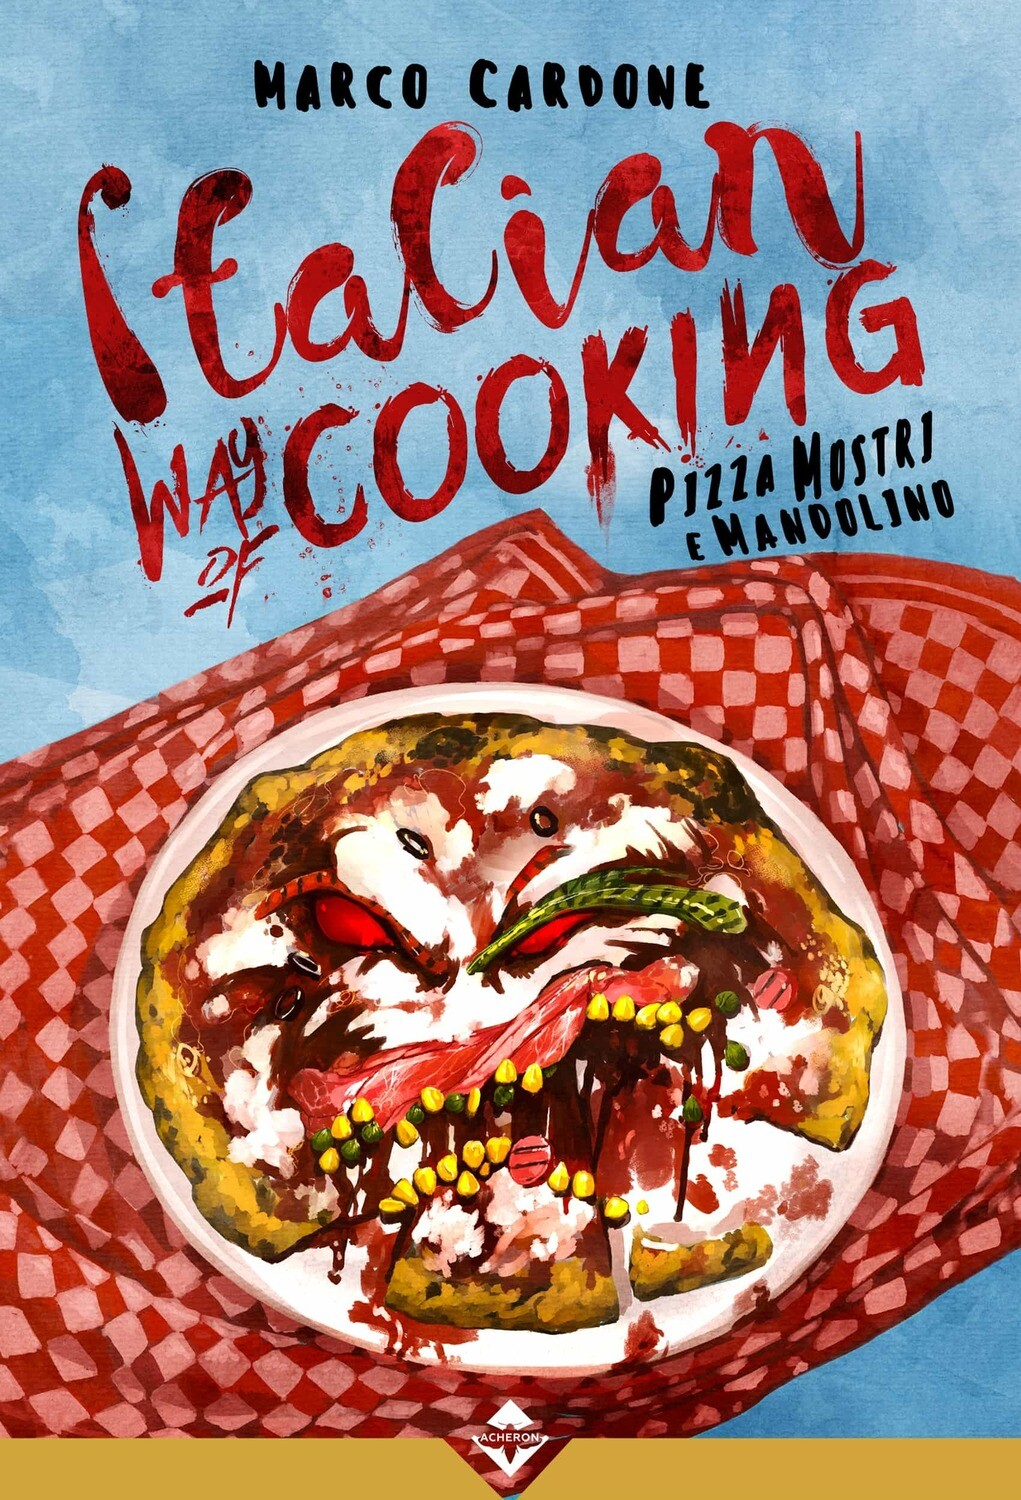 Italian Way of Cooking - Pizza, Mostri e Mandolino - Ebook